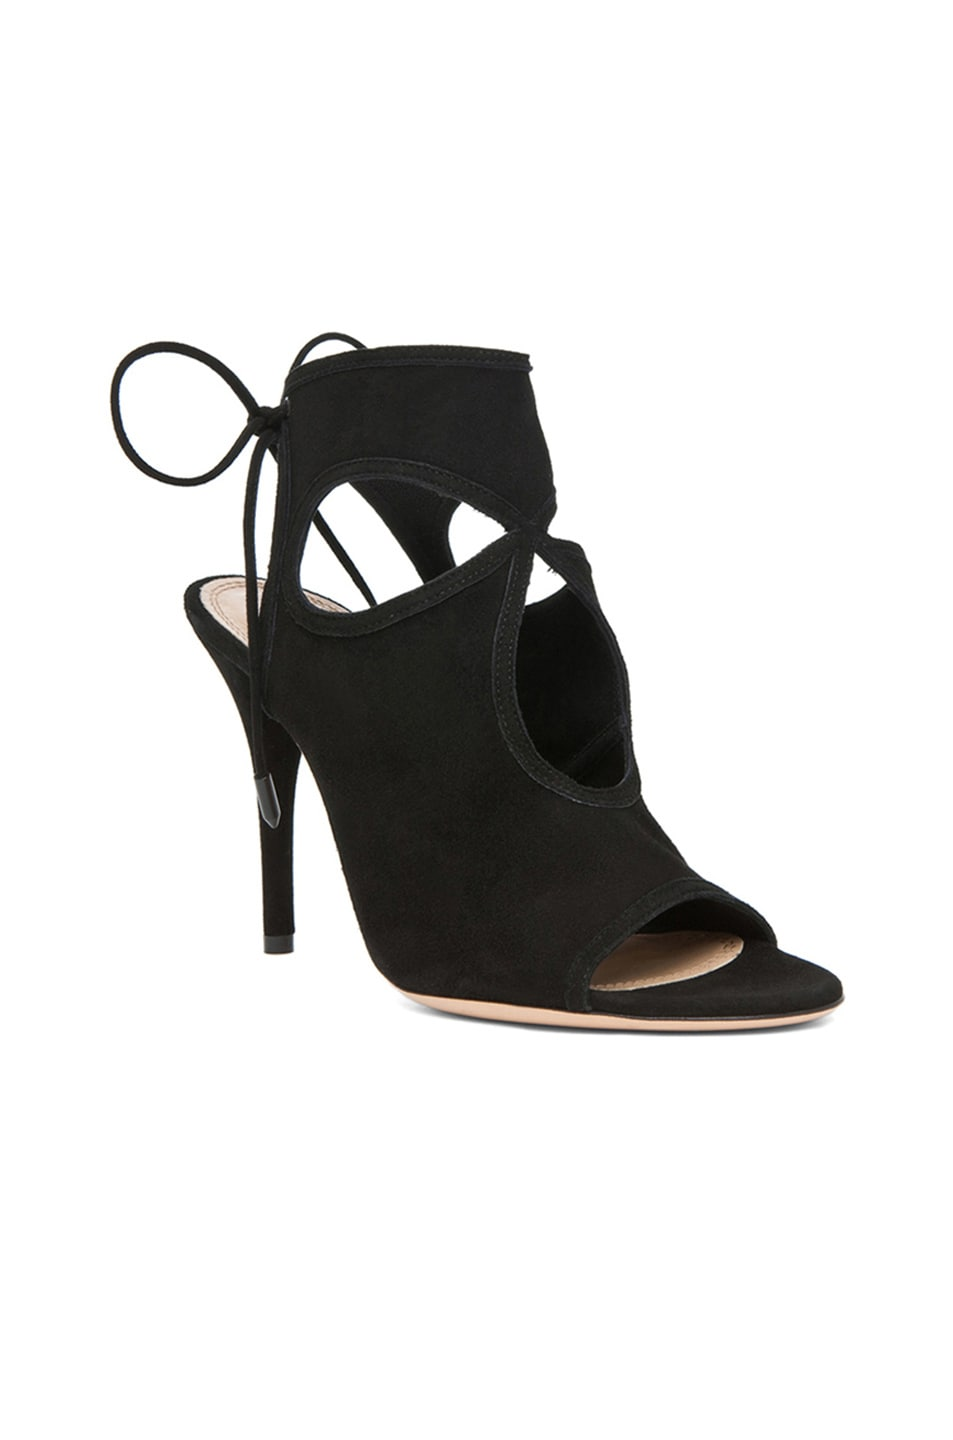 Image 2 of Aquazzura Sexy Thing Suede Heels in Black